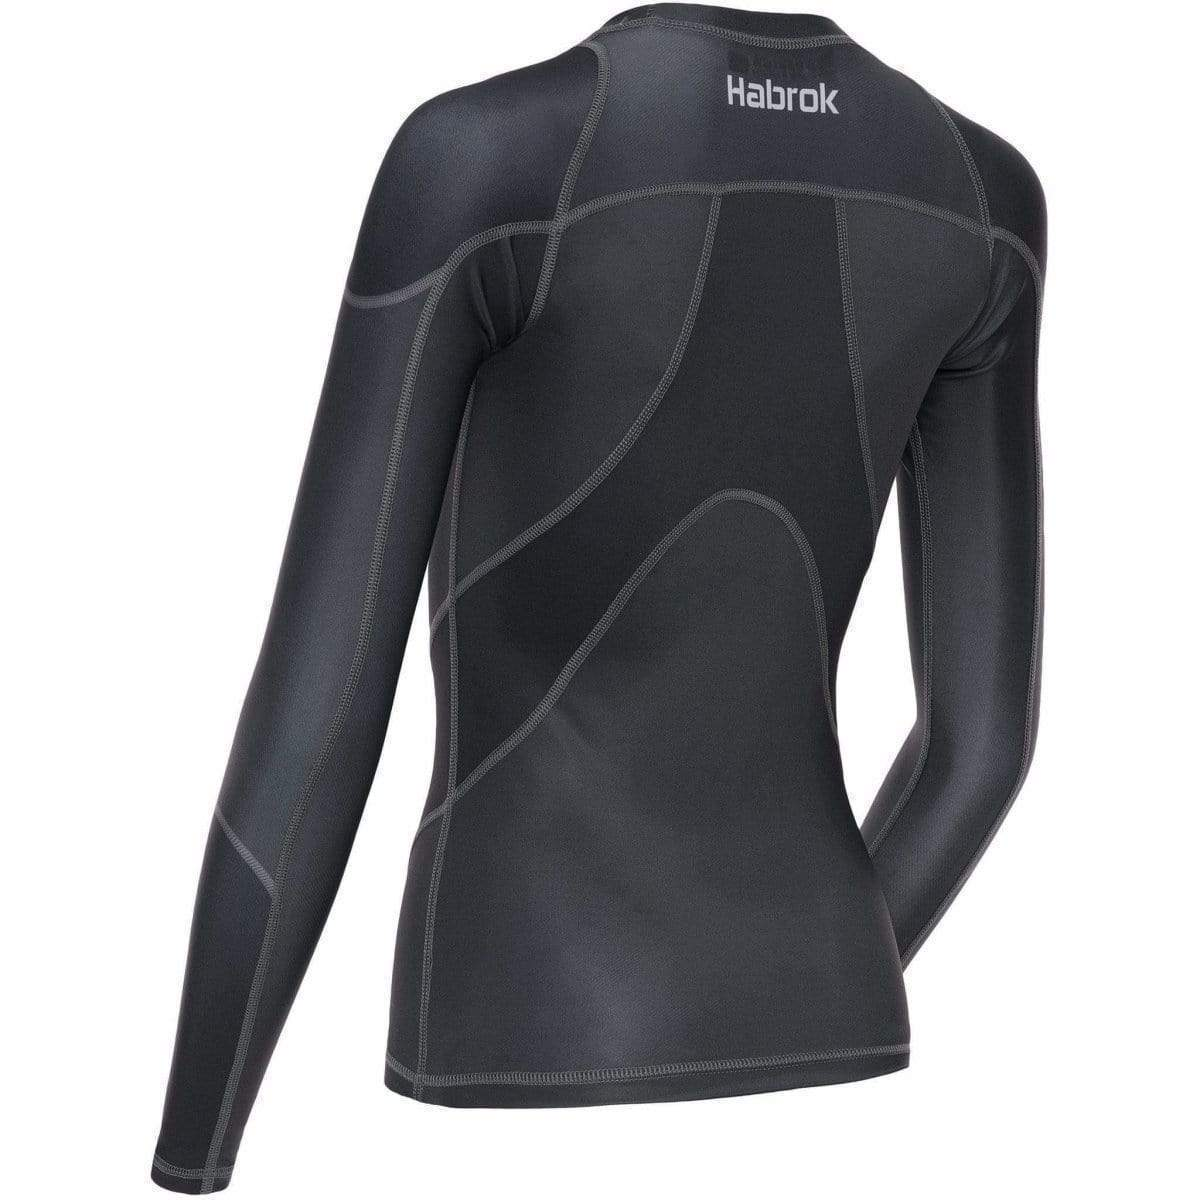 Habrok Rash Guard Pugnator | Rash Guard | Full Sleeve | Women